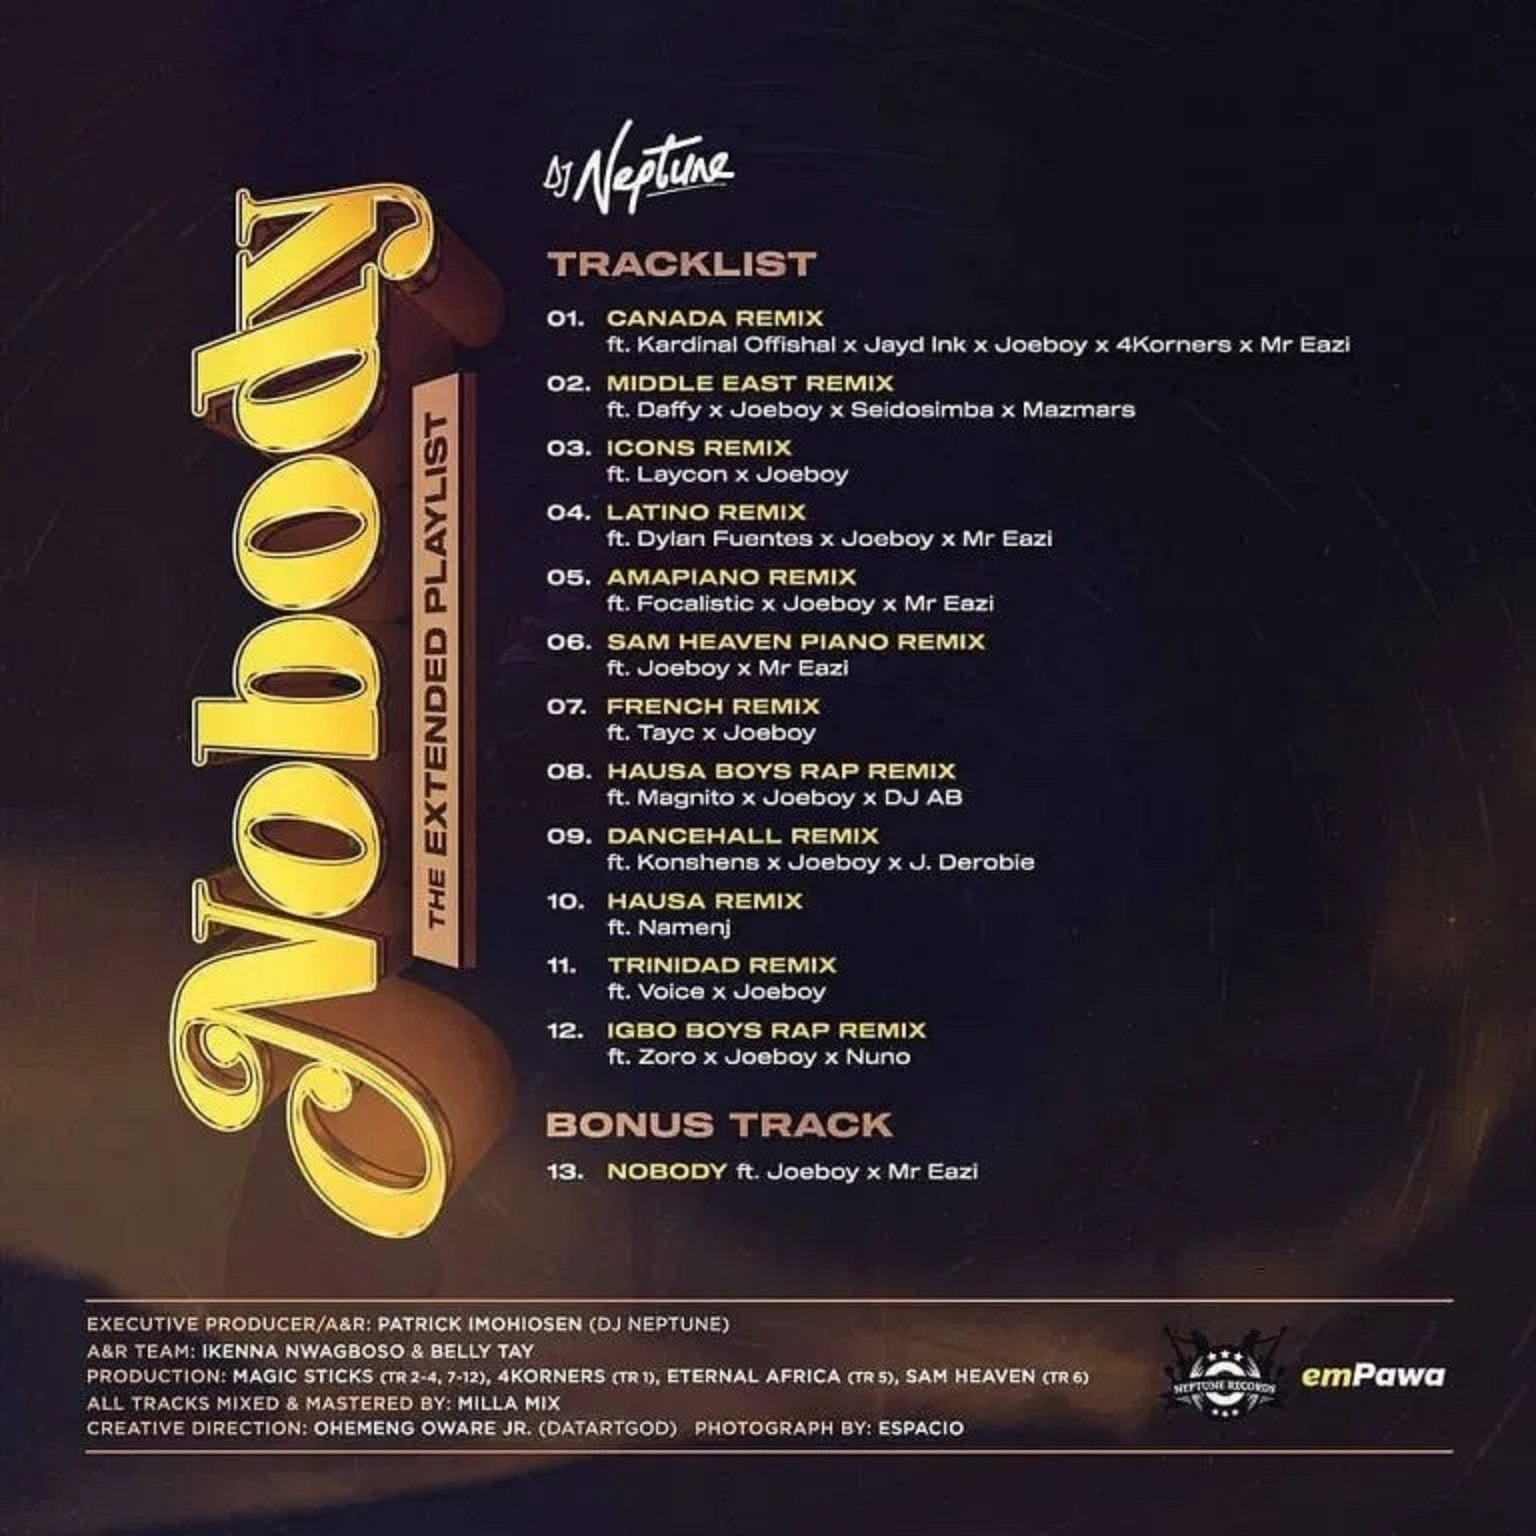 Dj Neptune Nobody The Extended Playlist Worldwide Remixes Ep Audio Albums Nobody, nobody, nobody, nobody, nobody, nobody, no don't wanna see you with nobody baddest (joe joe joe boy pon deck) dj neptune, hit me! dj neptune nobody the extended